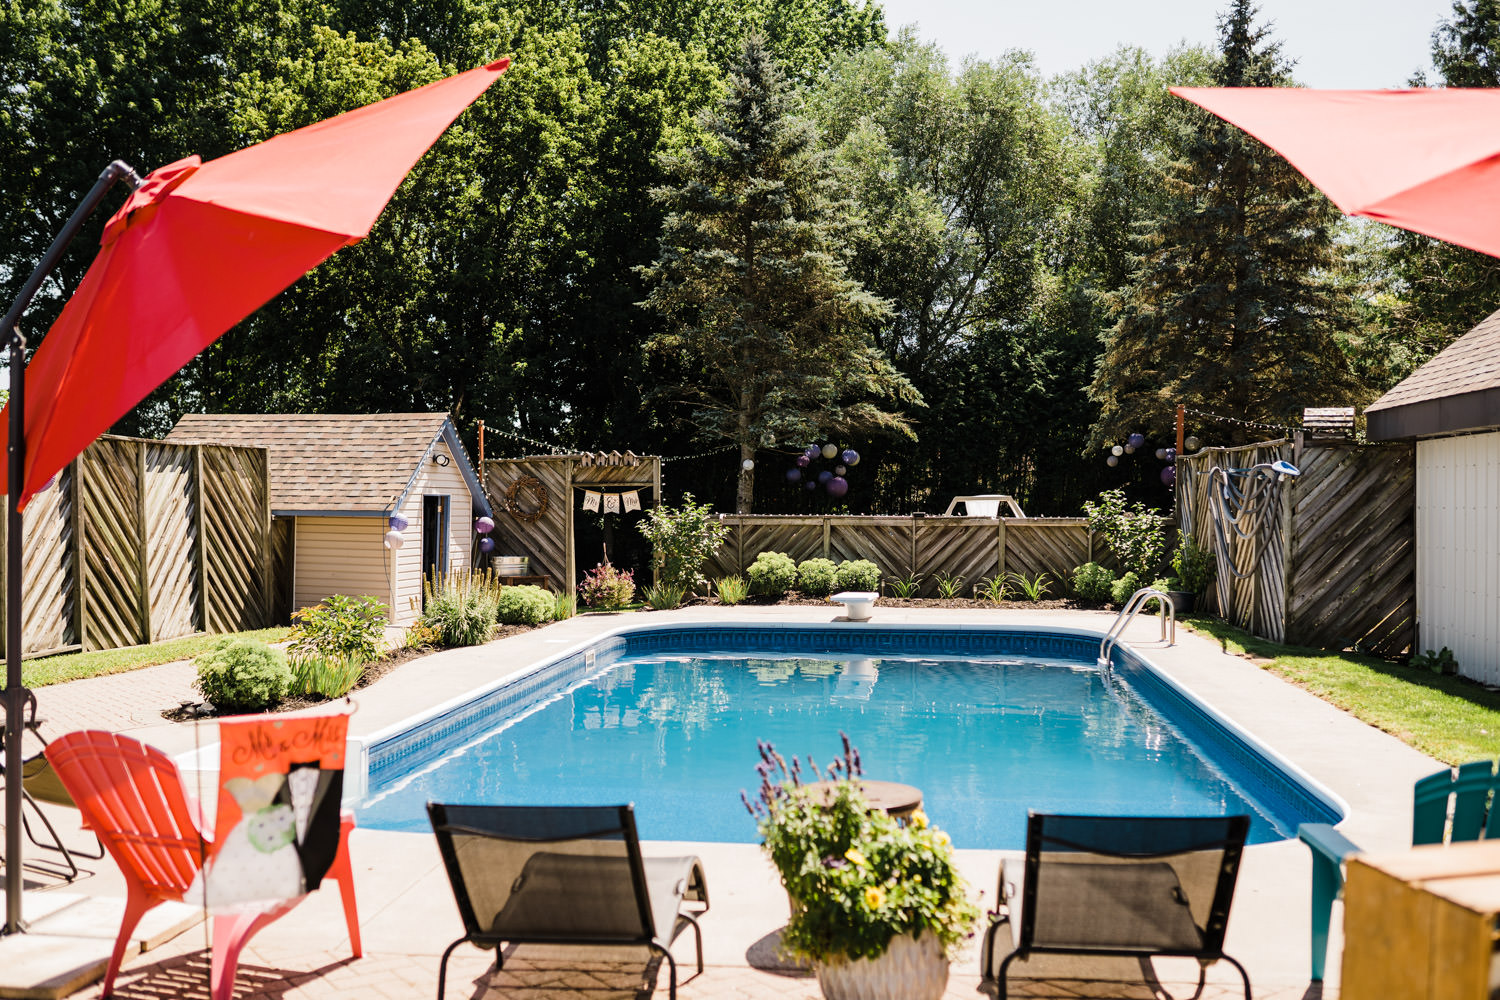 backyard with a pool all set for small wedding bbq